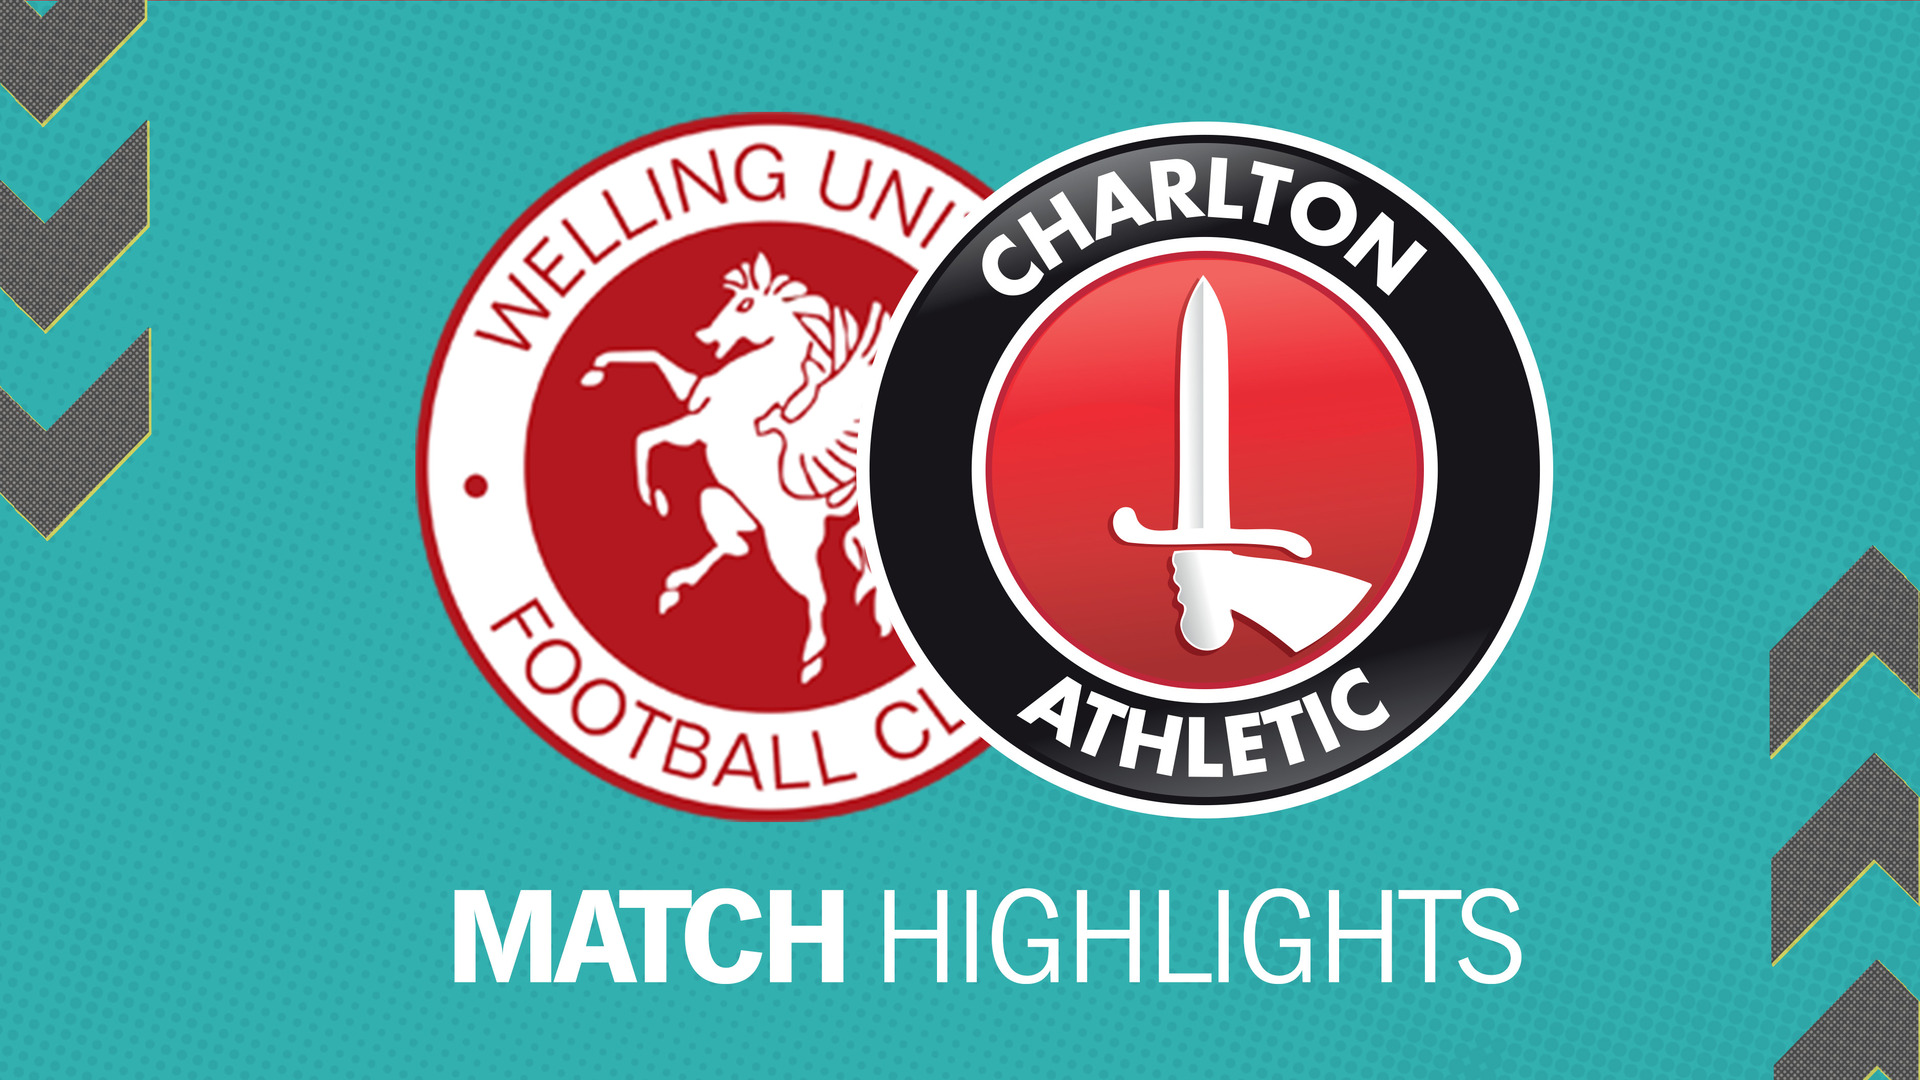 HIGHLIGHTS | Welling United 0 Charlton 2 (July 2019)